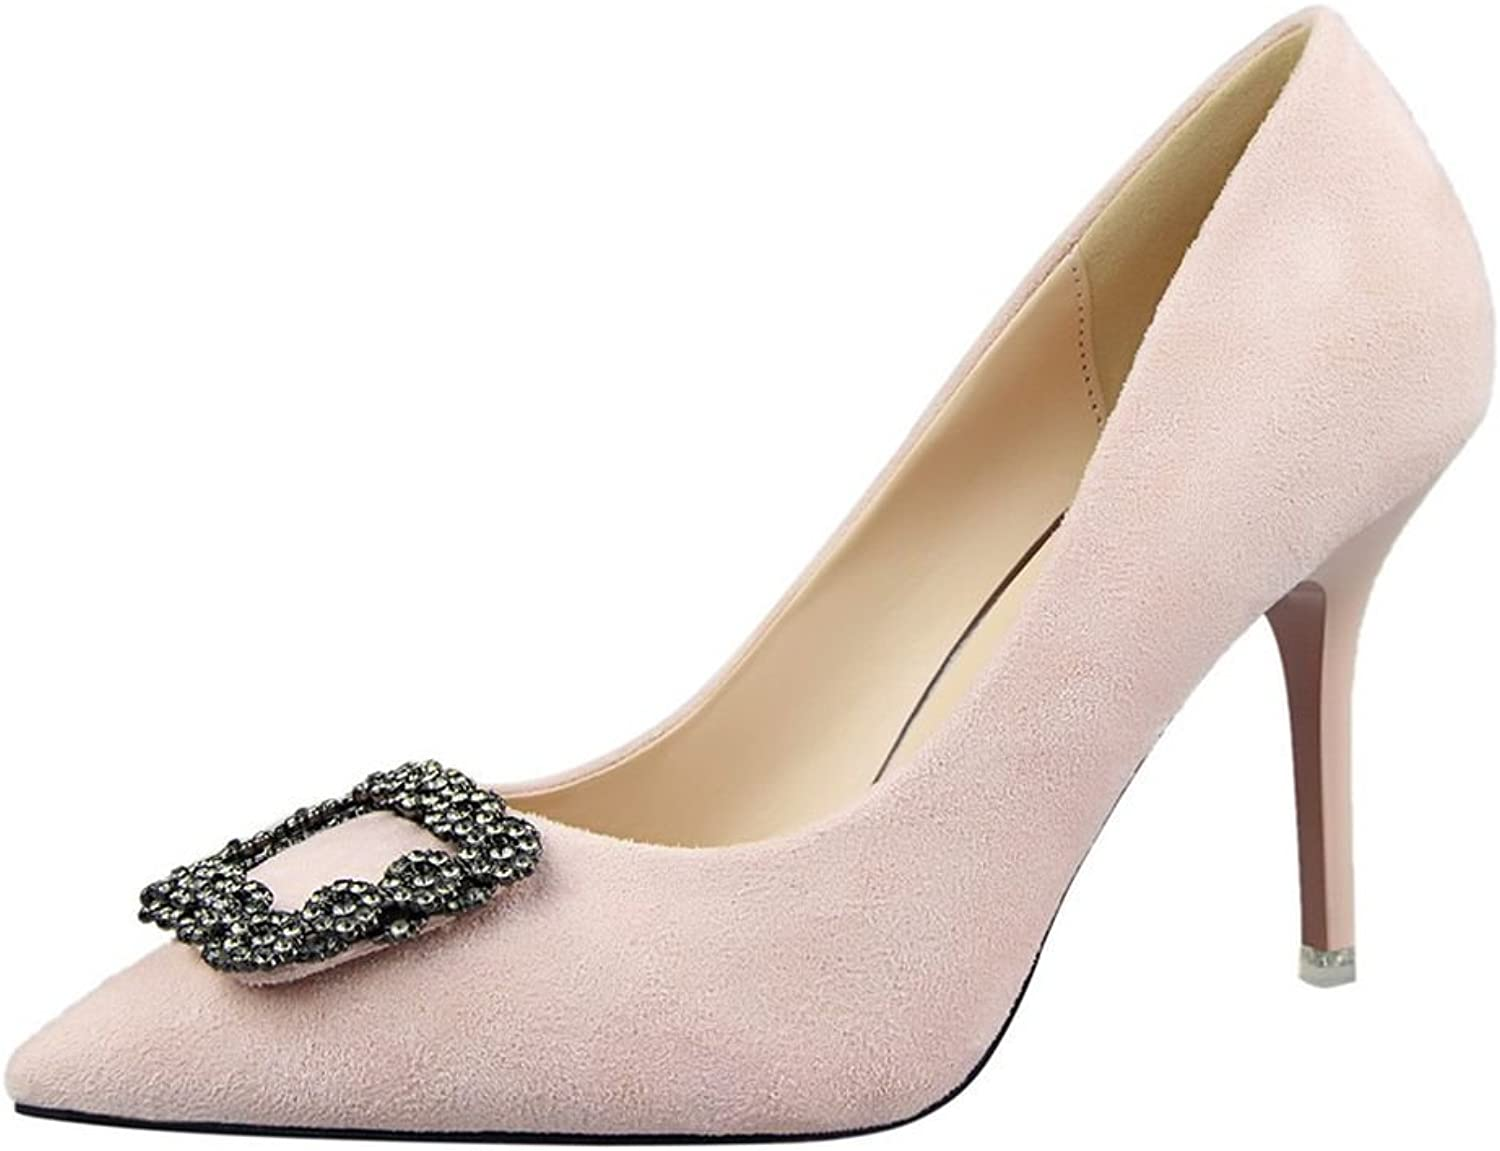 R.Y.S.E Ryse Women's Delicate Square Rhinestone Suede Elegant Temperament Thin High Heels Pointy shoes(39 M EU 8.5 B(M) US, Pink)